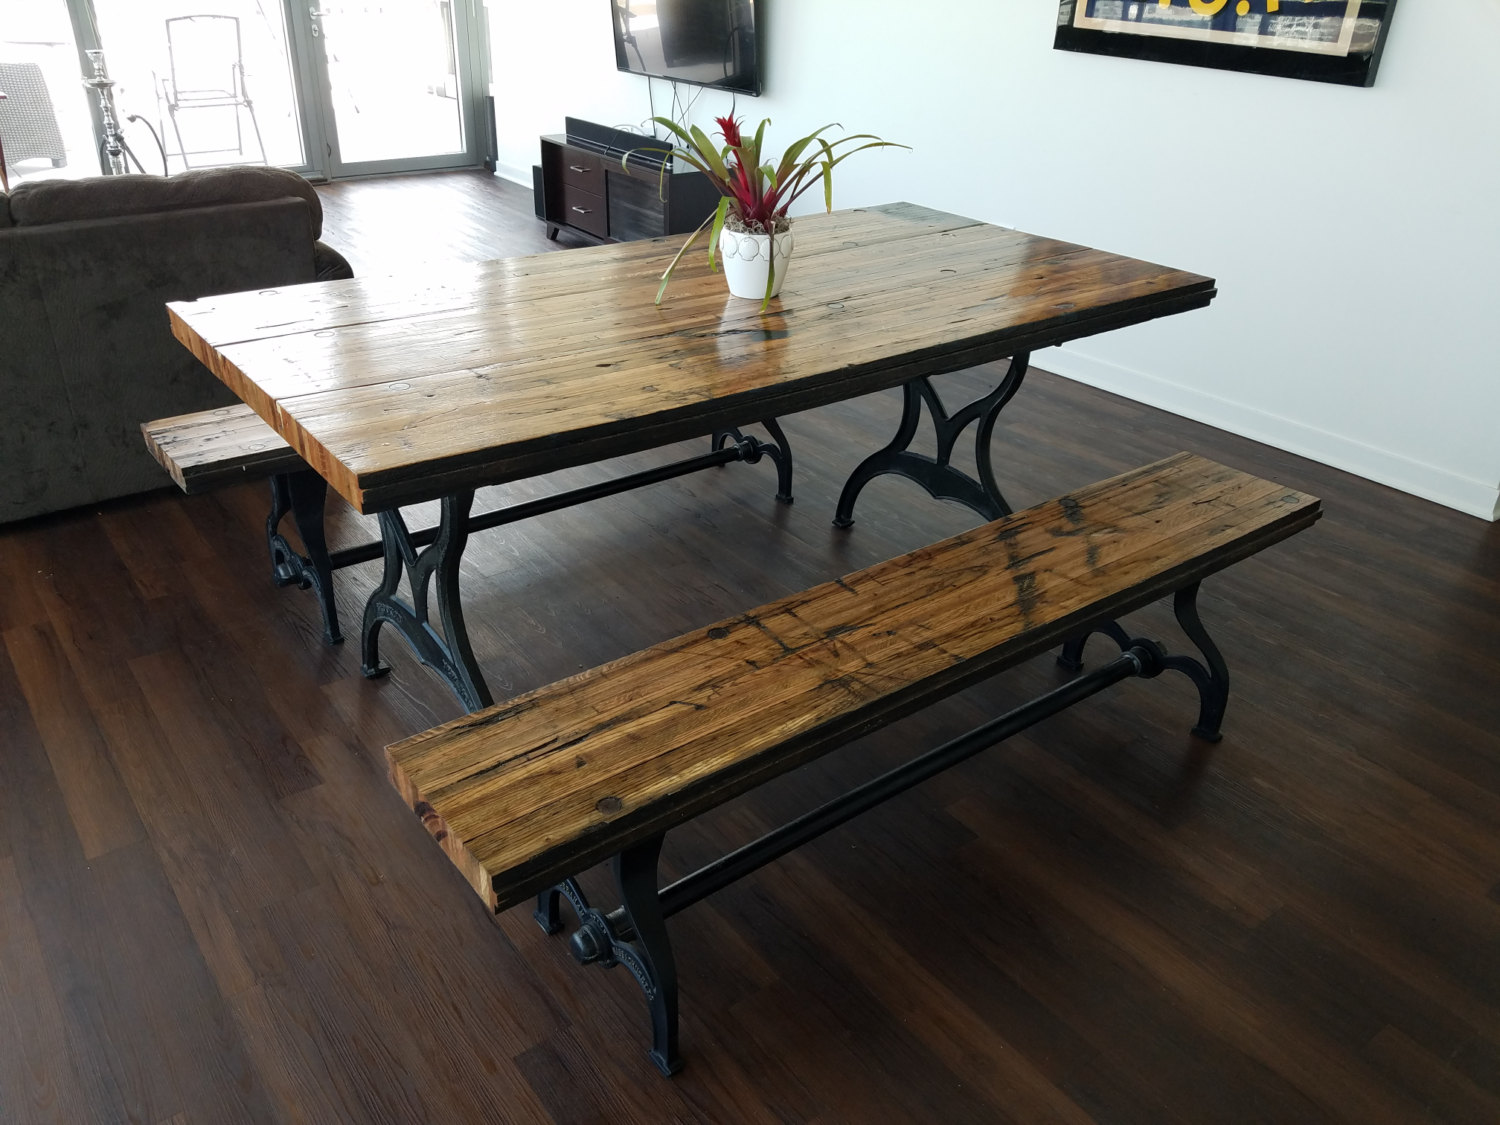 Reclaimed oak boxcar plank table with benches recycled vintage reclaimed oak boxcar plank table with benches recycled vintage antique rustic watchthetrailerfo